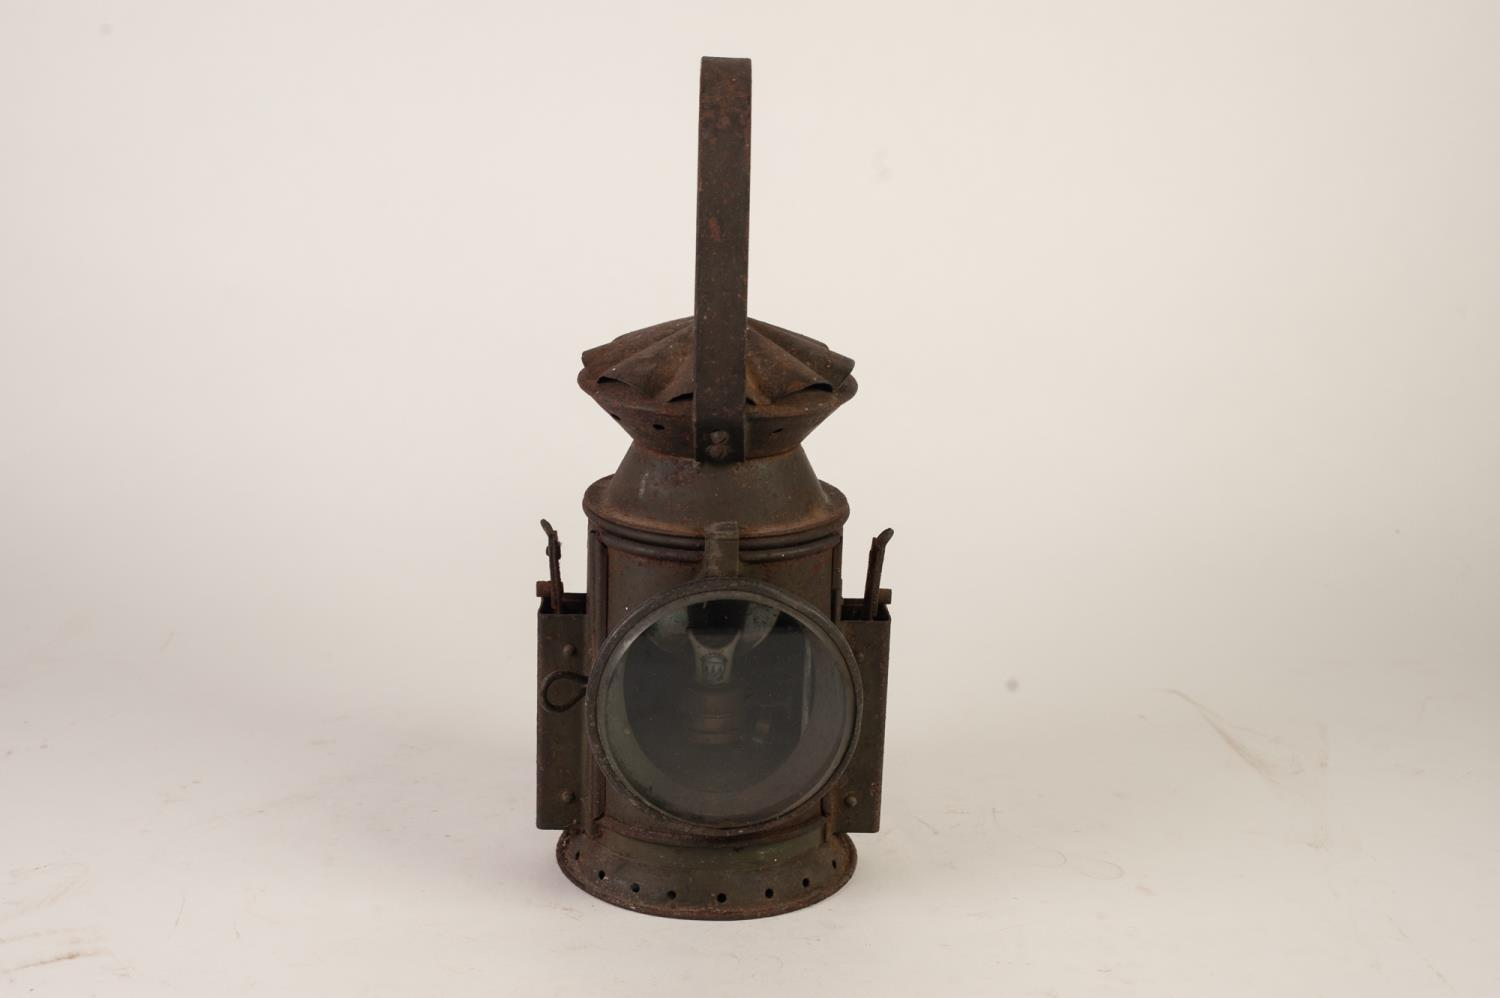 Lot 384 - PAINTED METAL RAILWAY LAMP, stamped C.E. AND S AND arrow mark 1956 JA 2348, plain lens side sprung